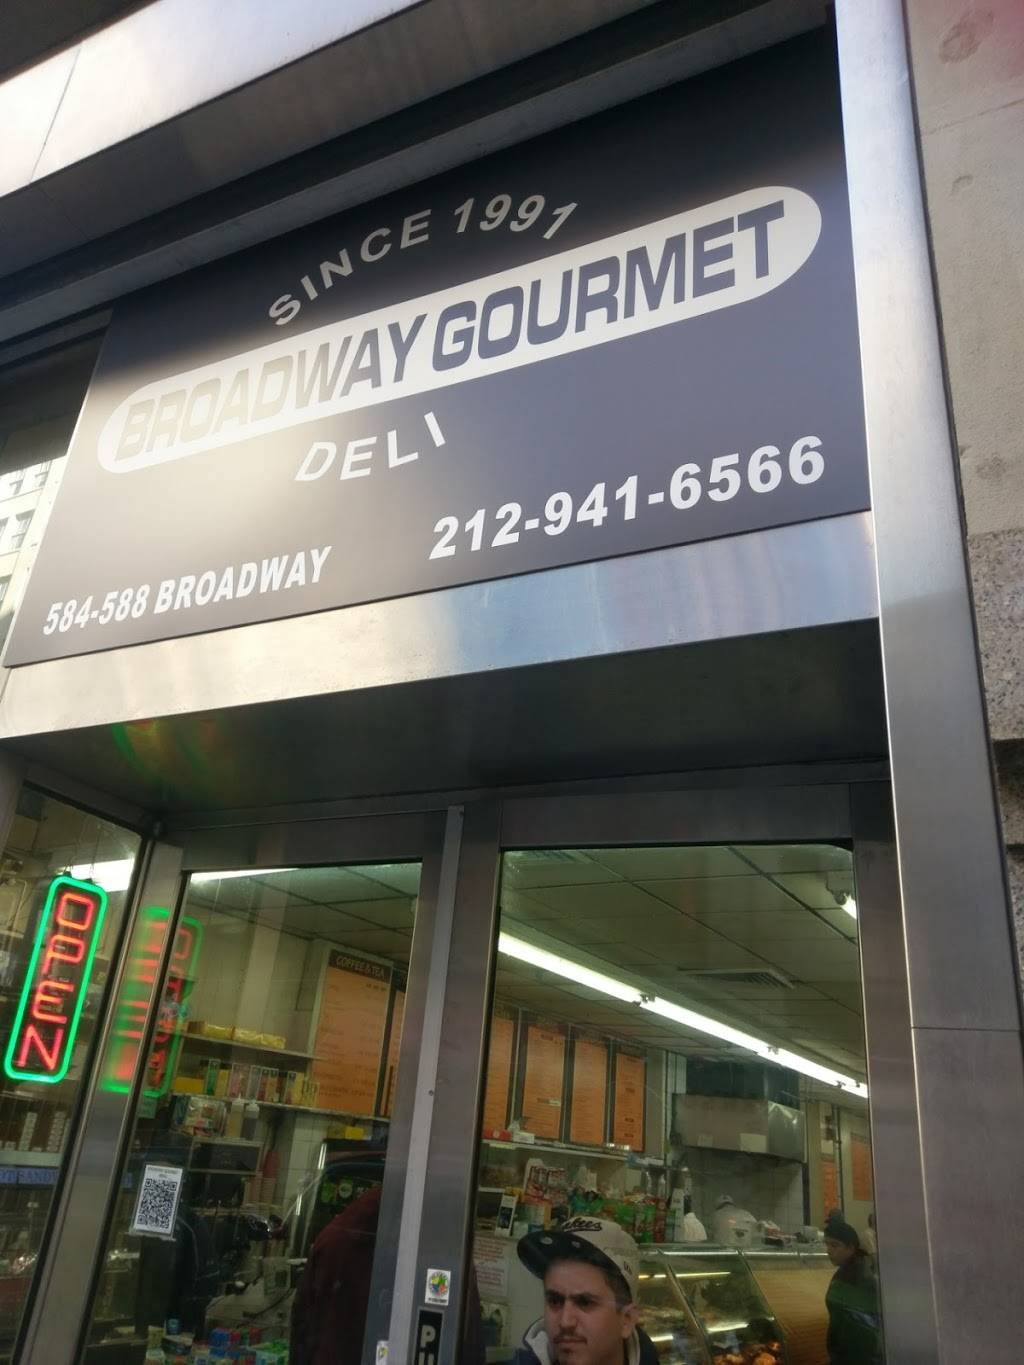 Broadway Gourmet | restaurant | 588 Broadway, New York, NY 10012, USA | 2129416566 OR +1 212-941-6566